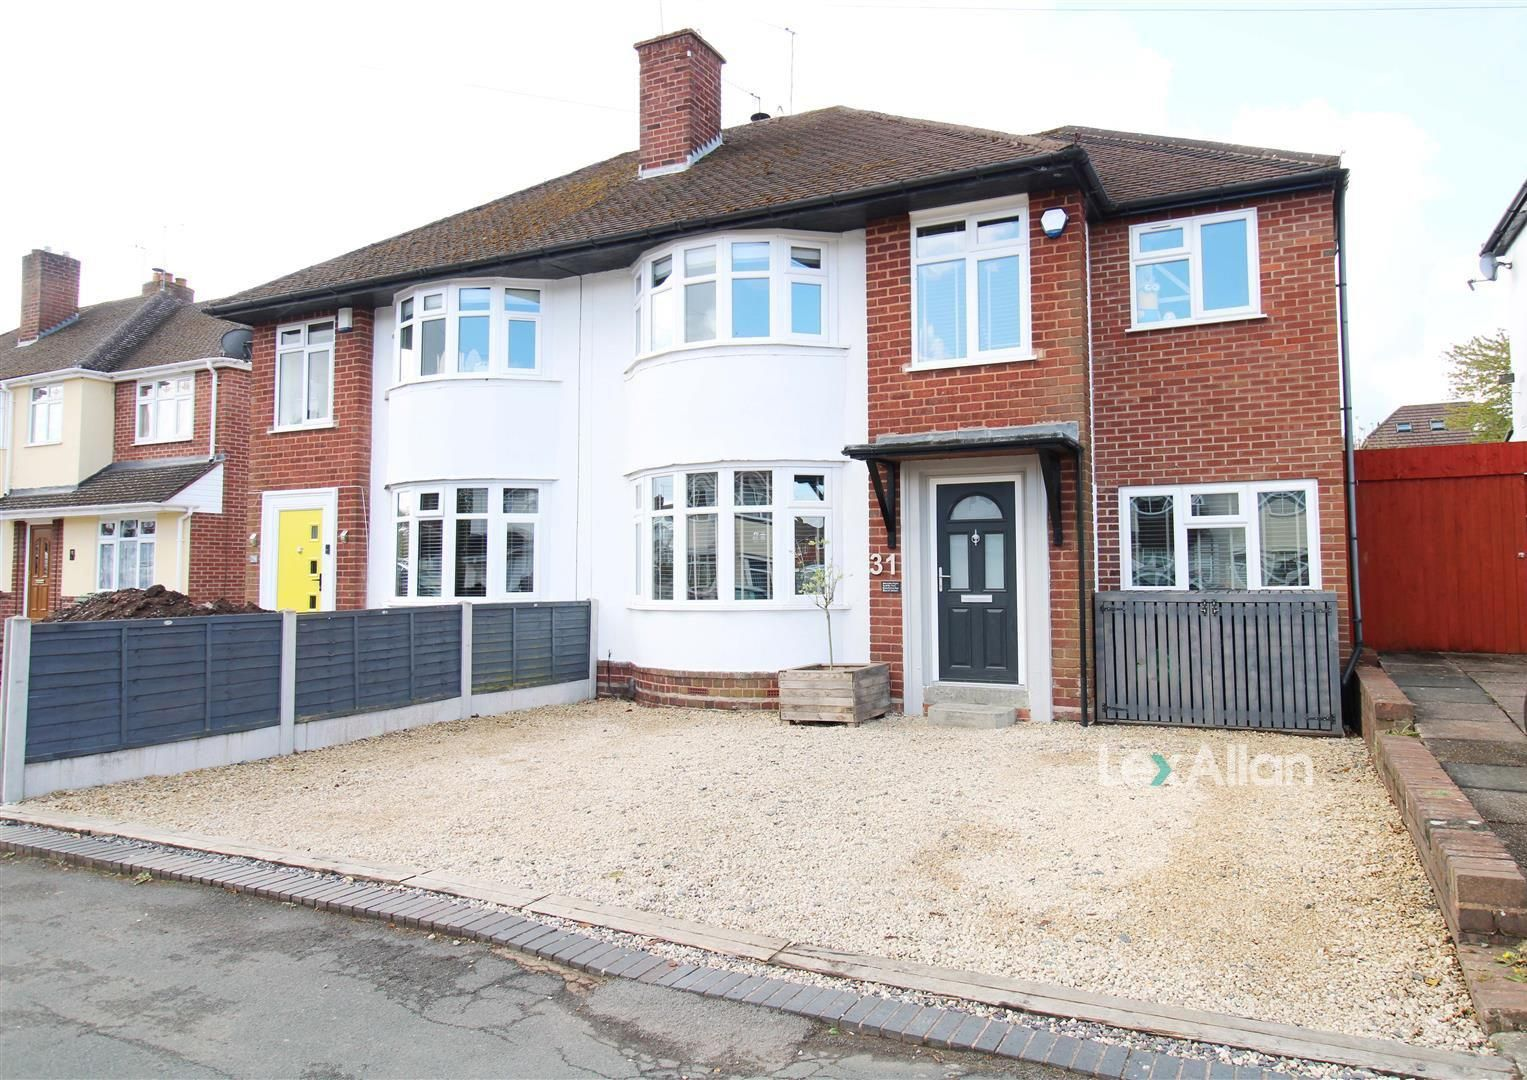 4 bed semi-detached for sale in Norton, DY8